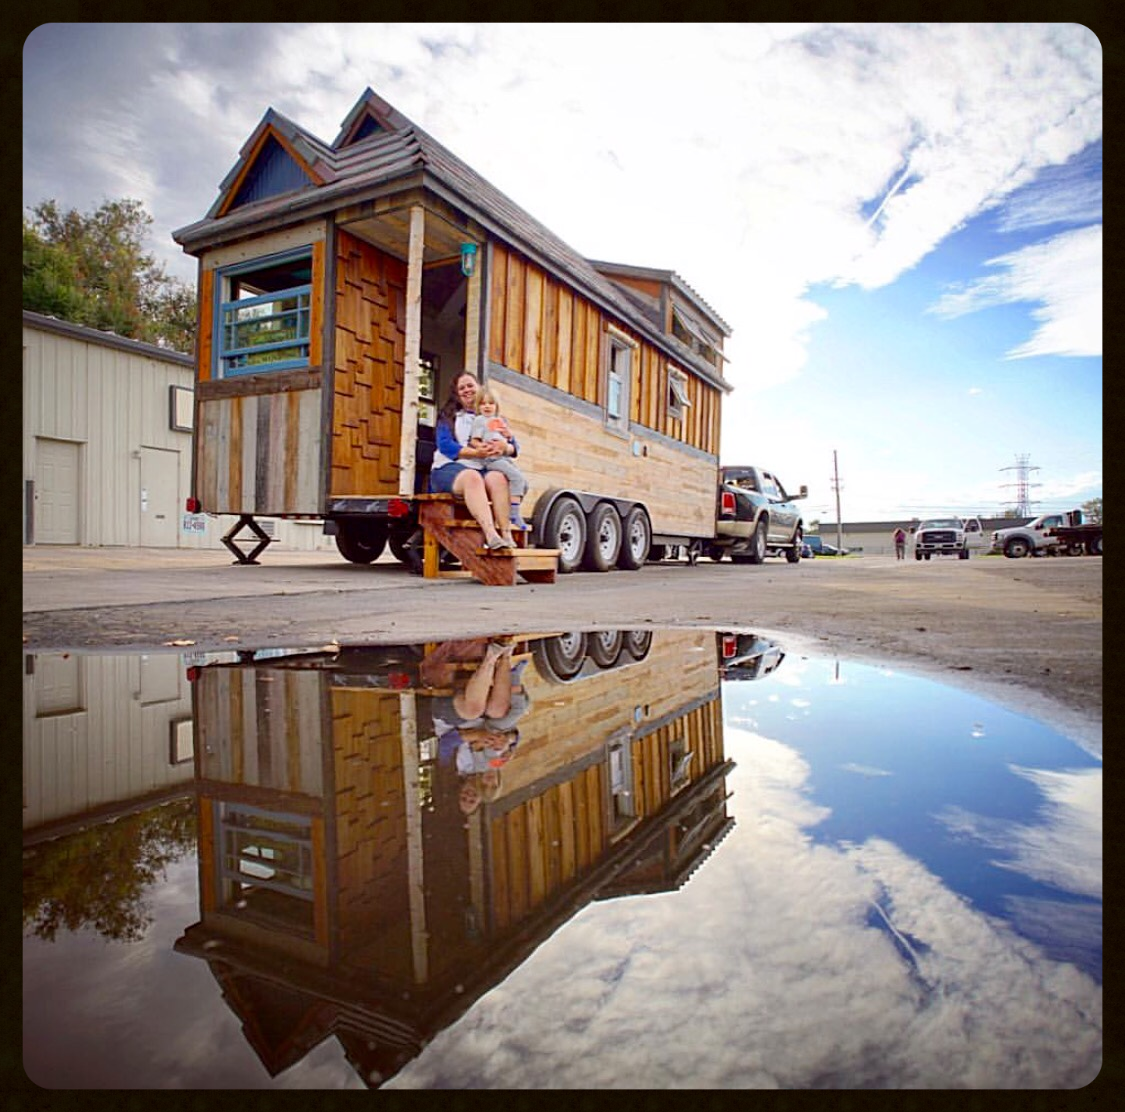 Here are R.A.D. and Meg posing at the the open house we had at Trailer Made Trailers in Denver on our way to our winter parking spot in October 2015.Photo credit to Guillaume Dutilh of Tiny House Giant Journey - he's amazing!